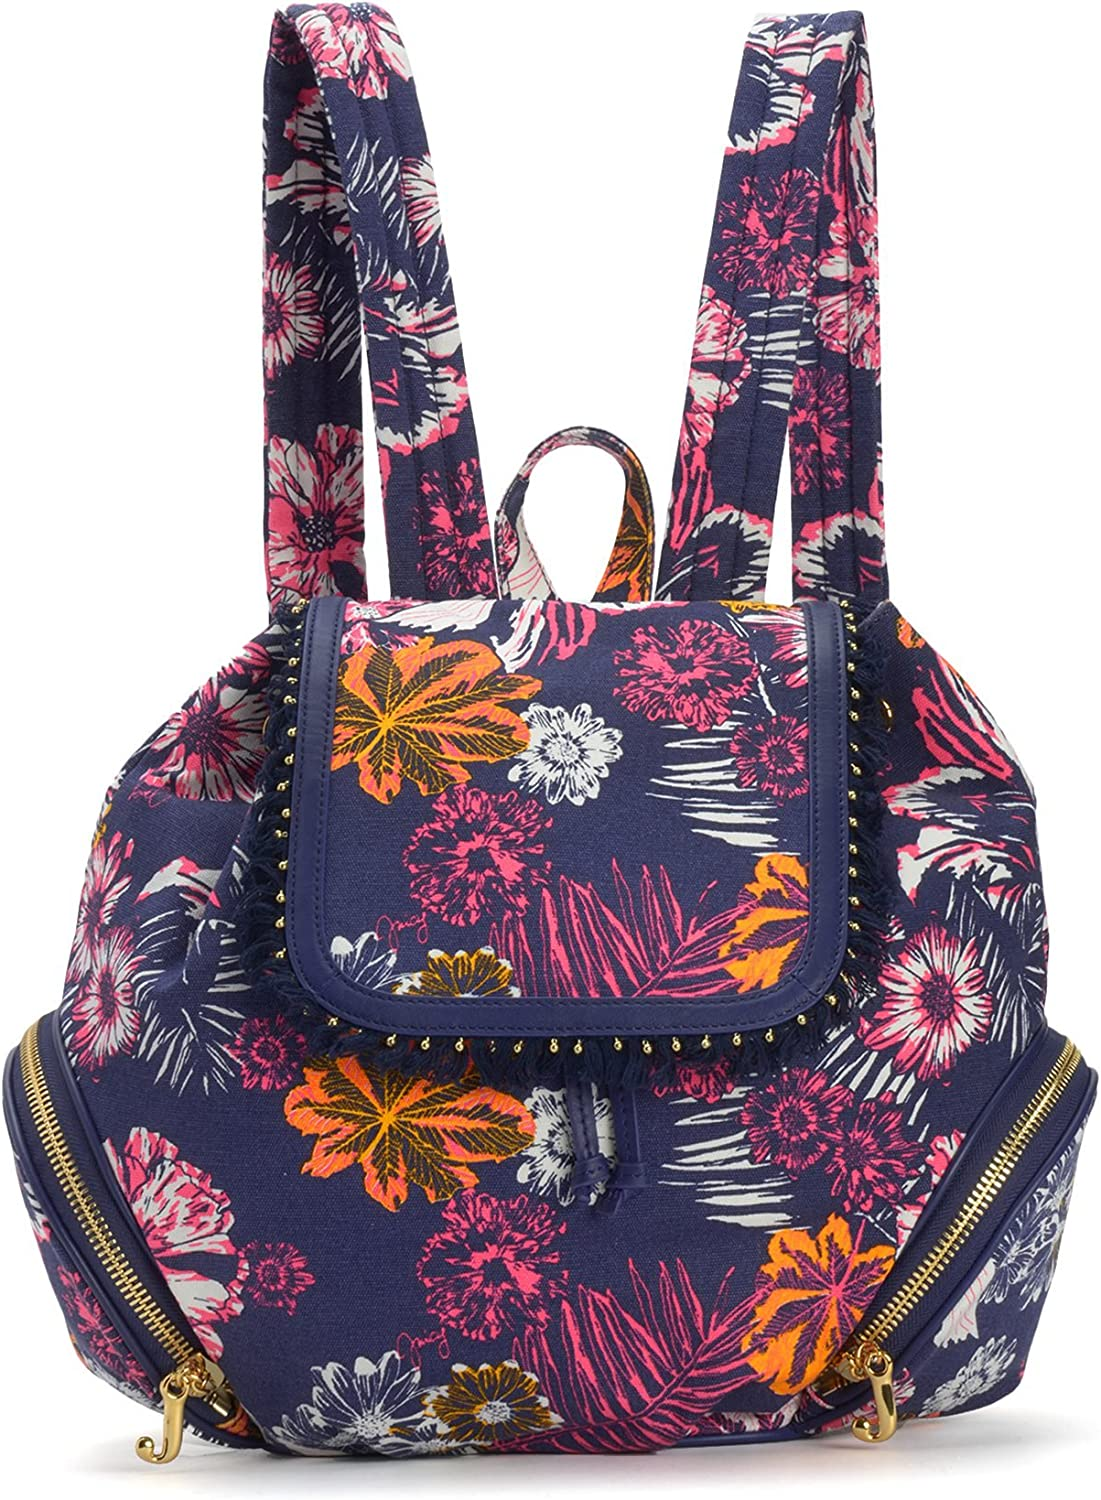 Juicy Couture Bold Botanic Canvas Backpack, Multi